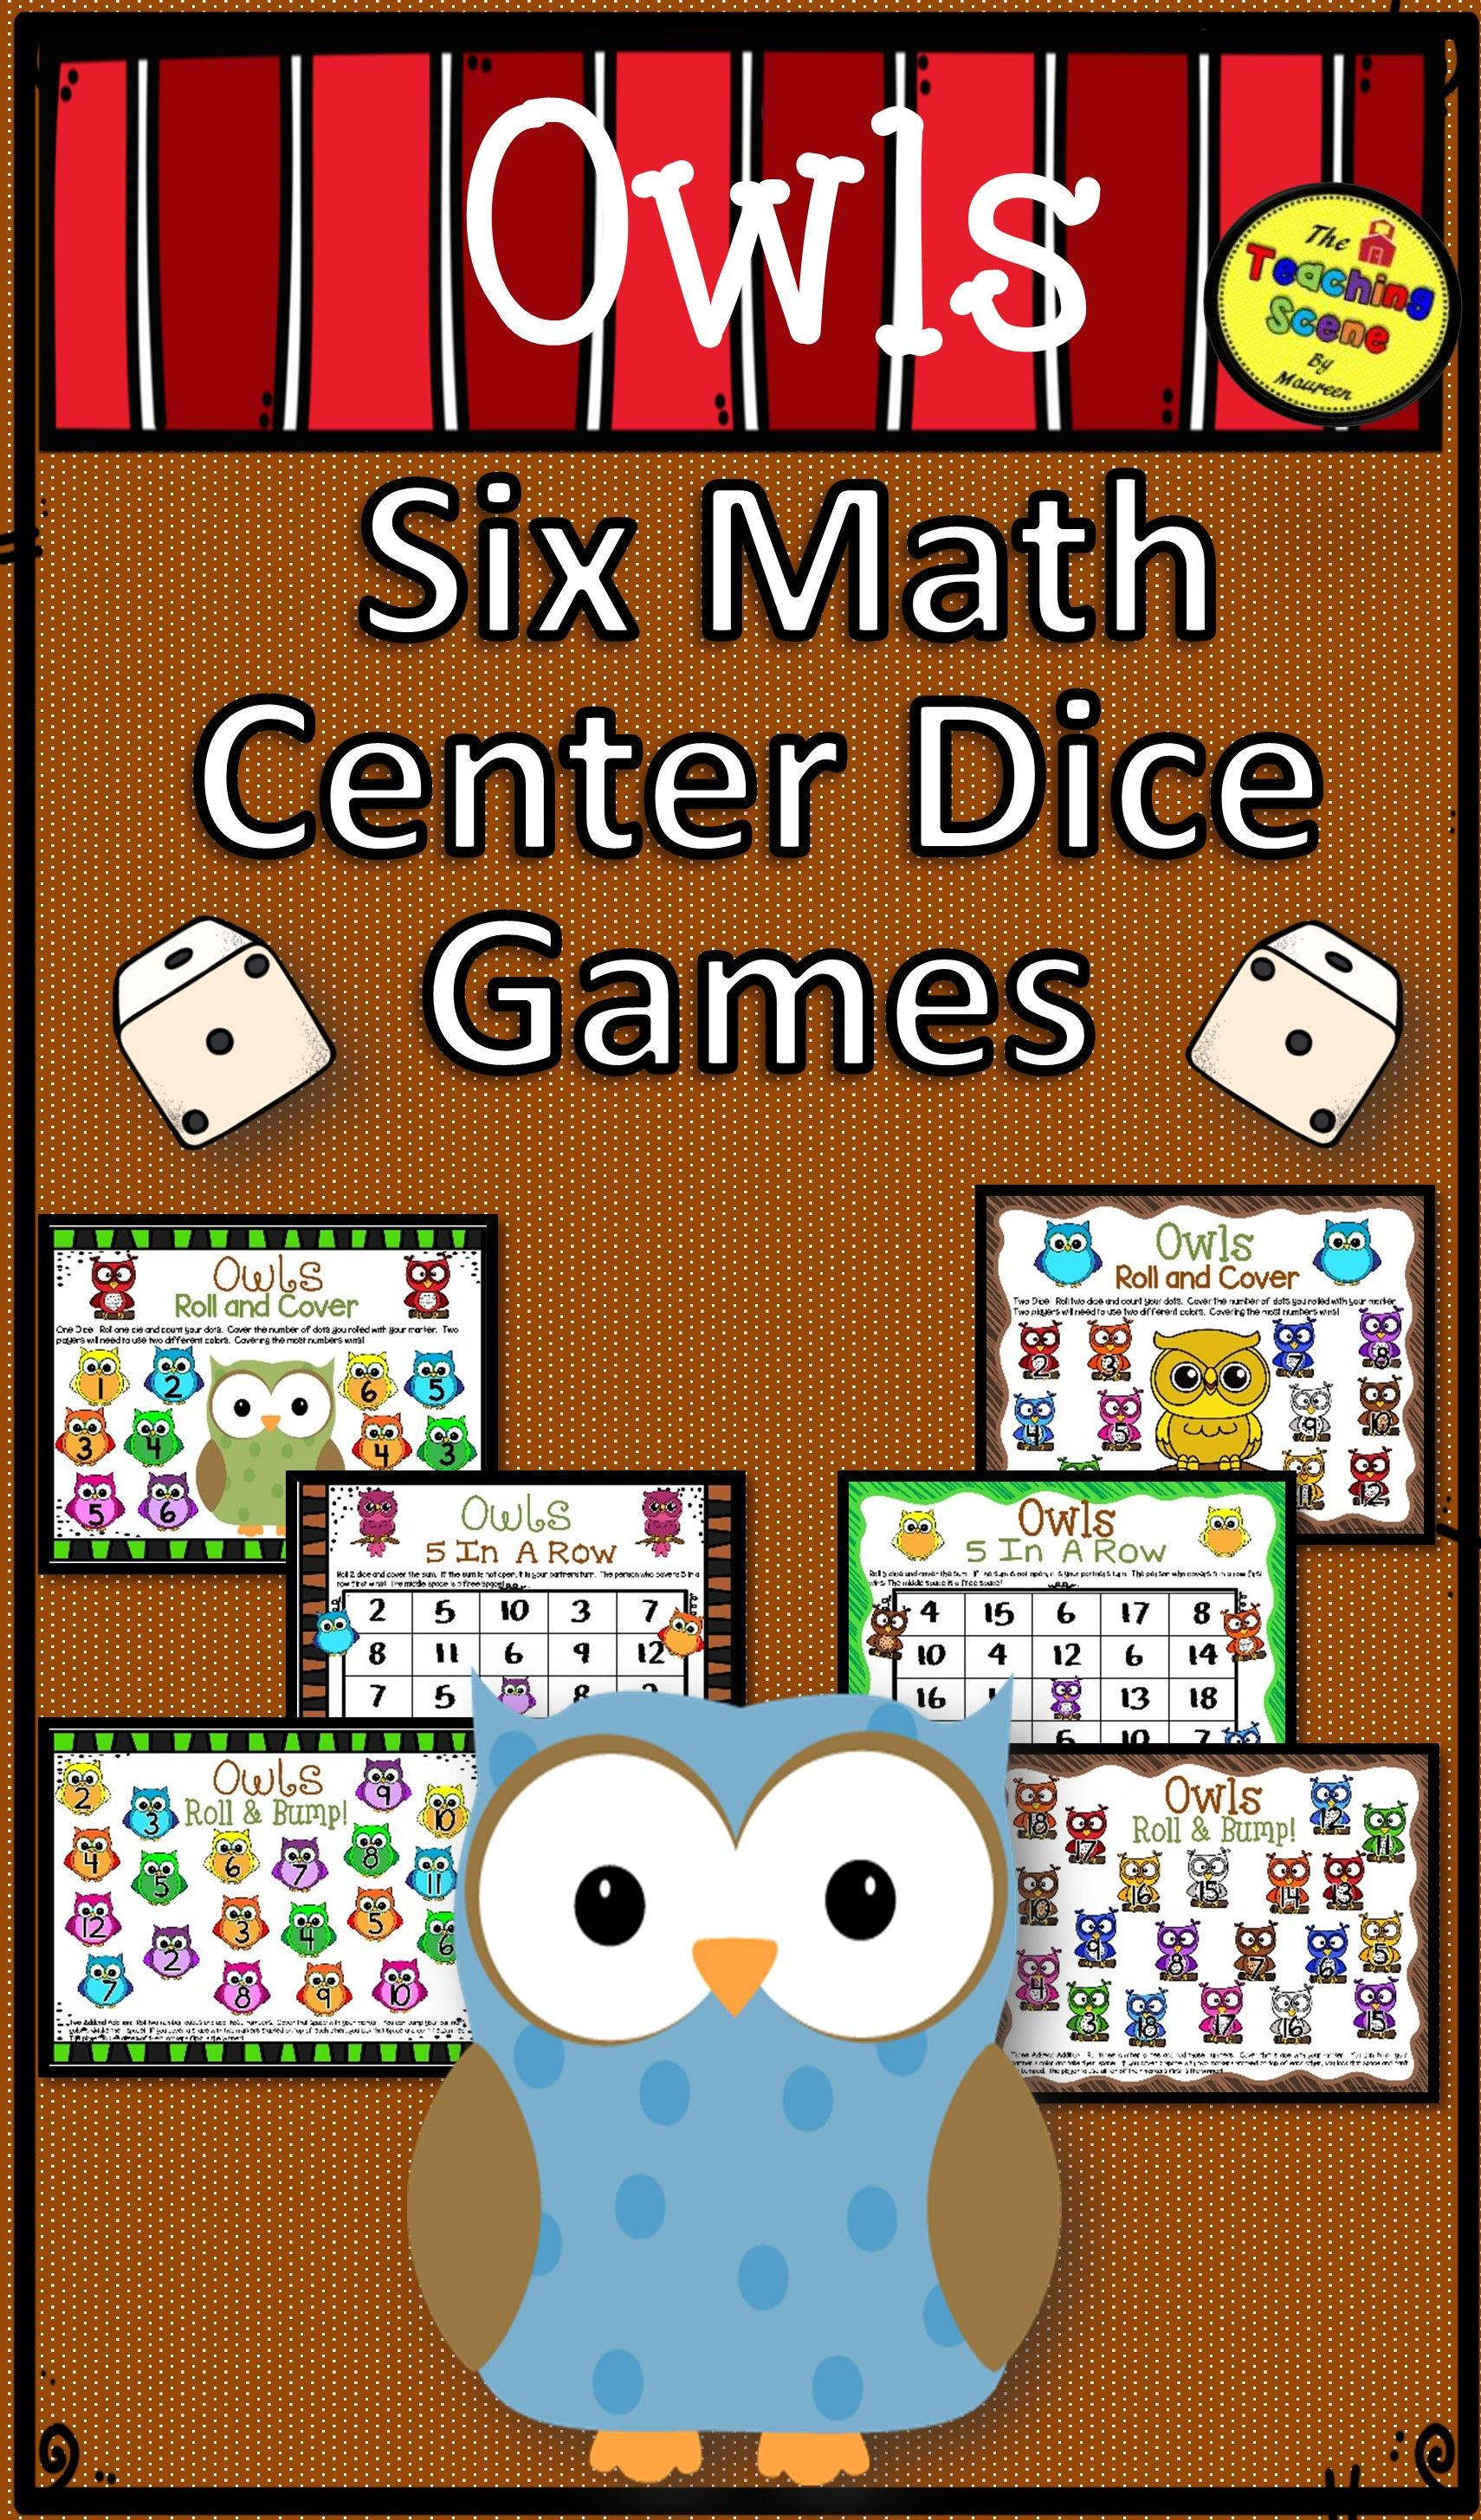 Owls Math Center Dice Games